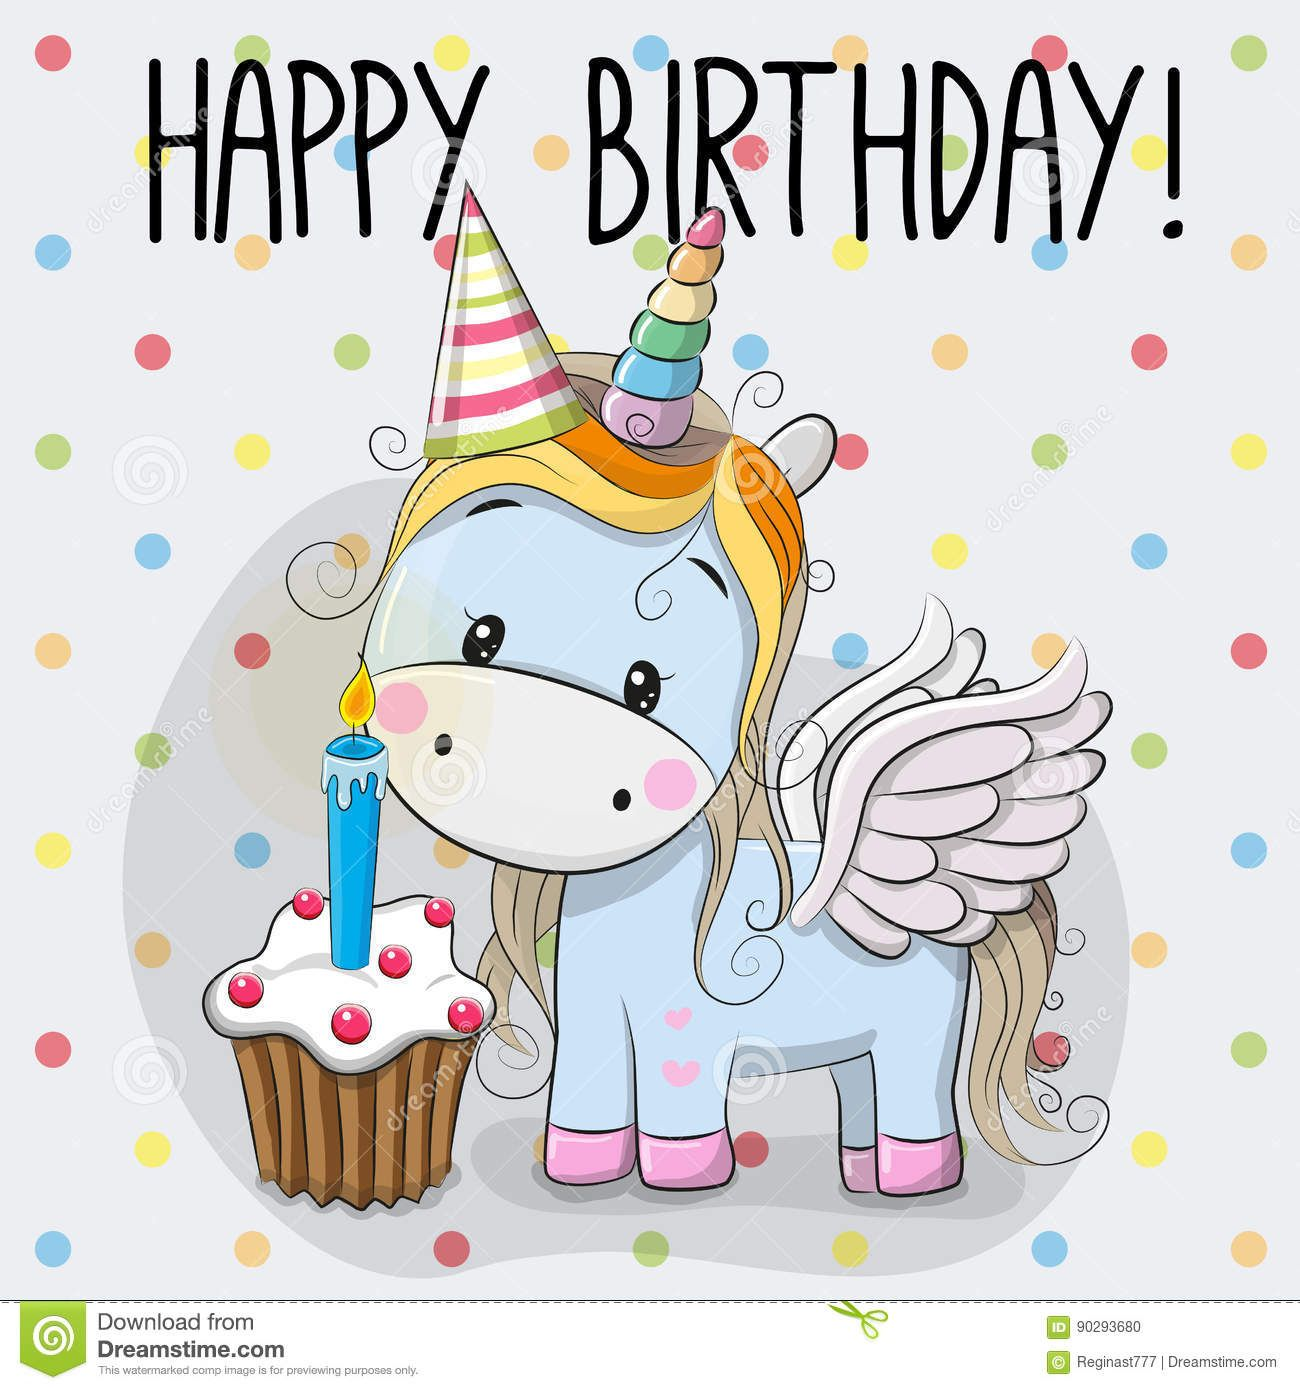 Illustration about Greeting card cute Cartoon Unicorn with